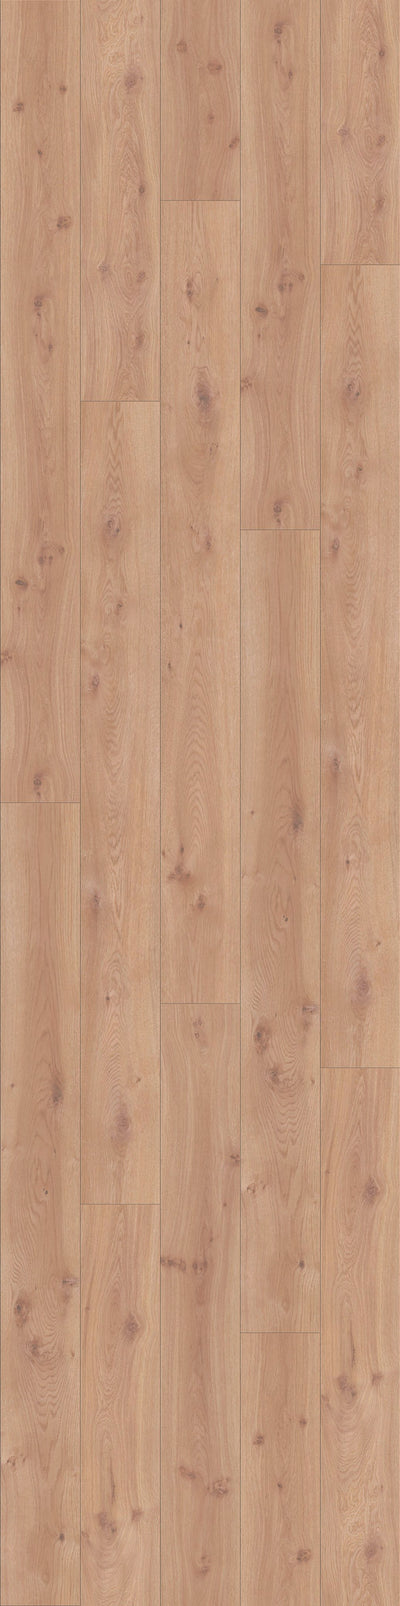 Pergo Drift Oak Long Plank